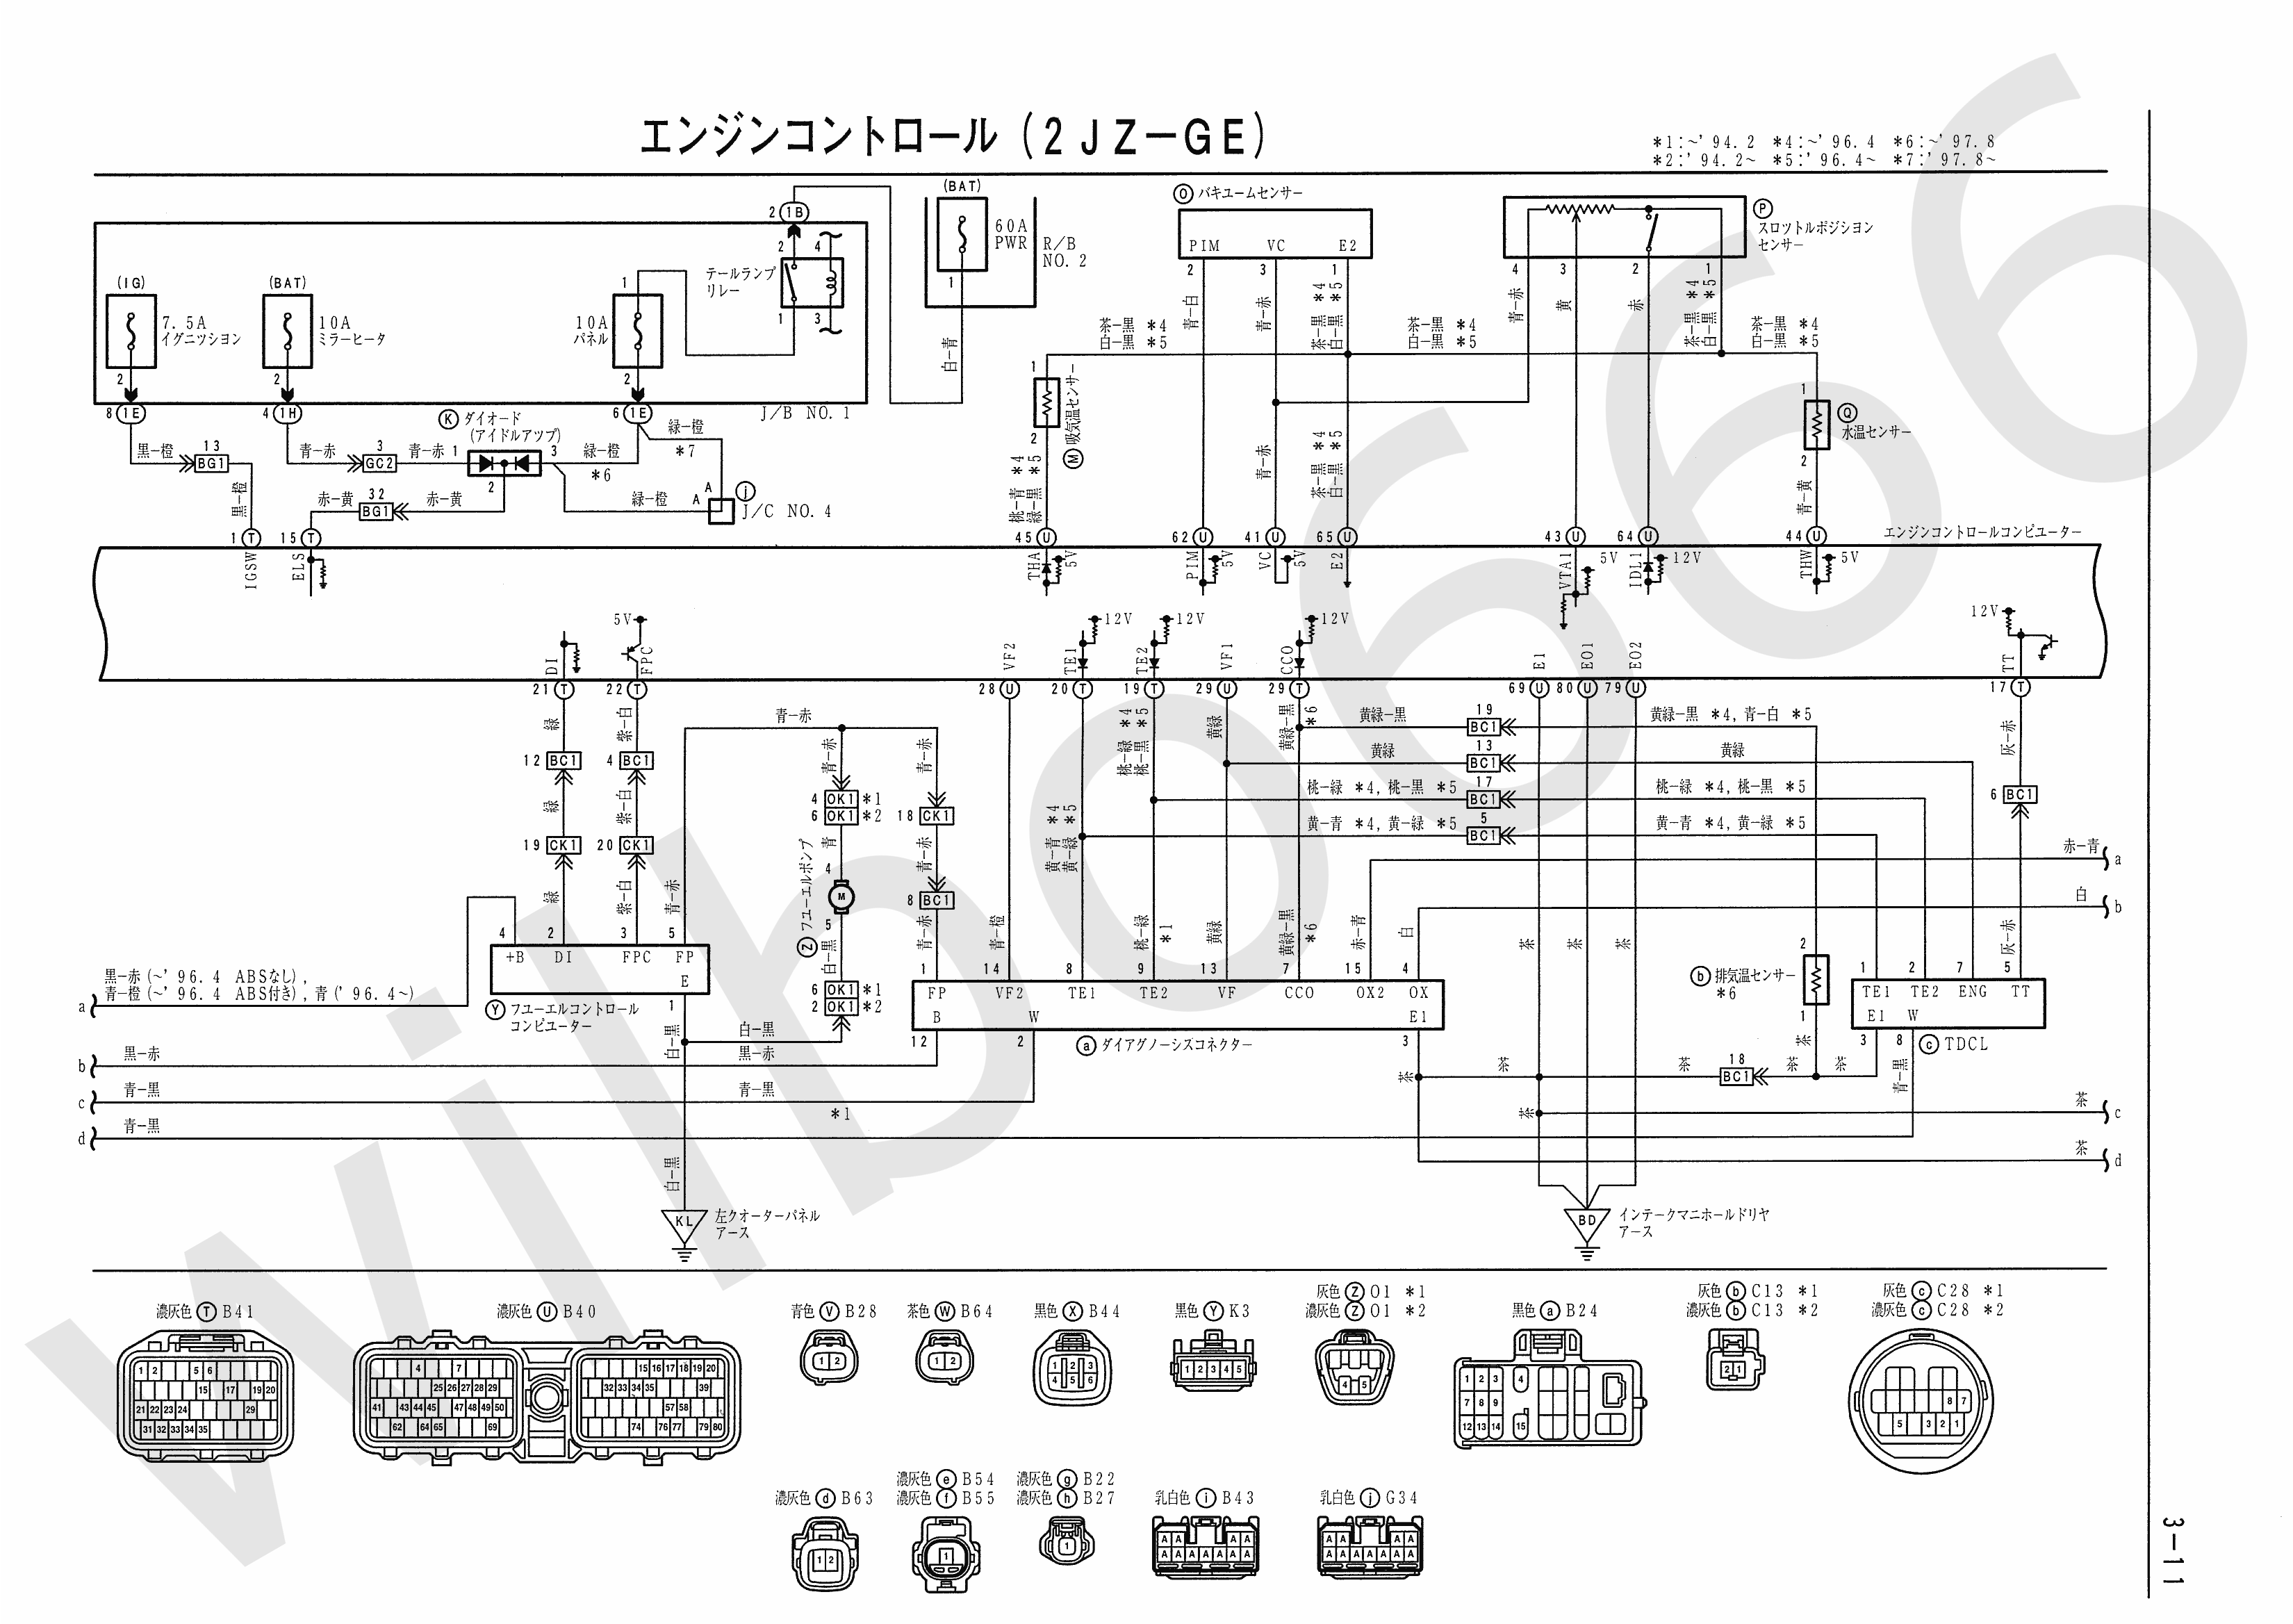 JZA80 Electrical Wiring Diagram 6742505 3 11?ssl=1 toyota ipsum wiring diagram toyota wiring diagrams instruction jzx100 wiring diagram at soozxer.org